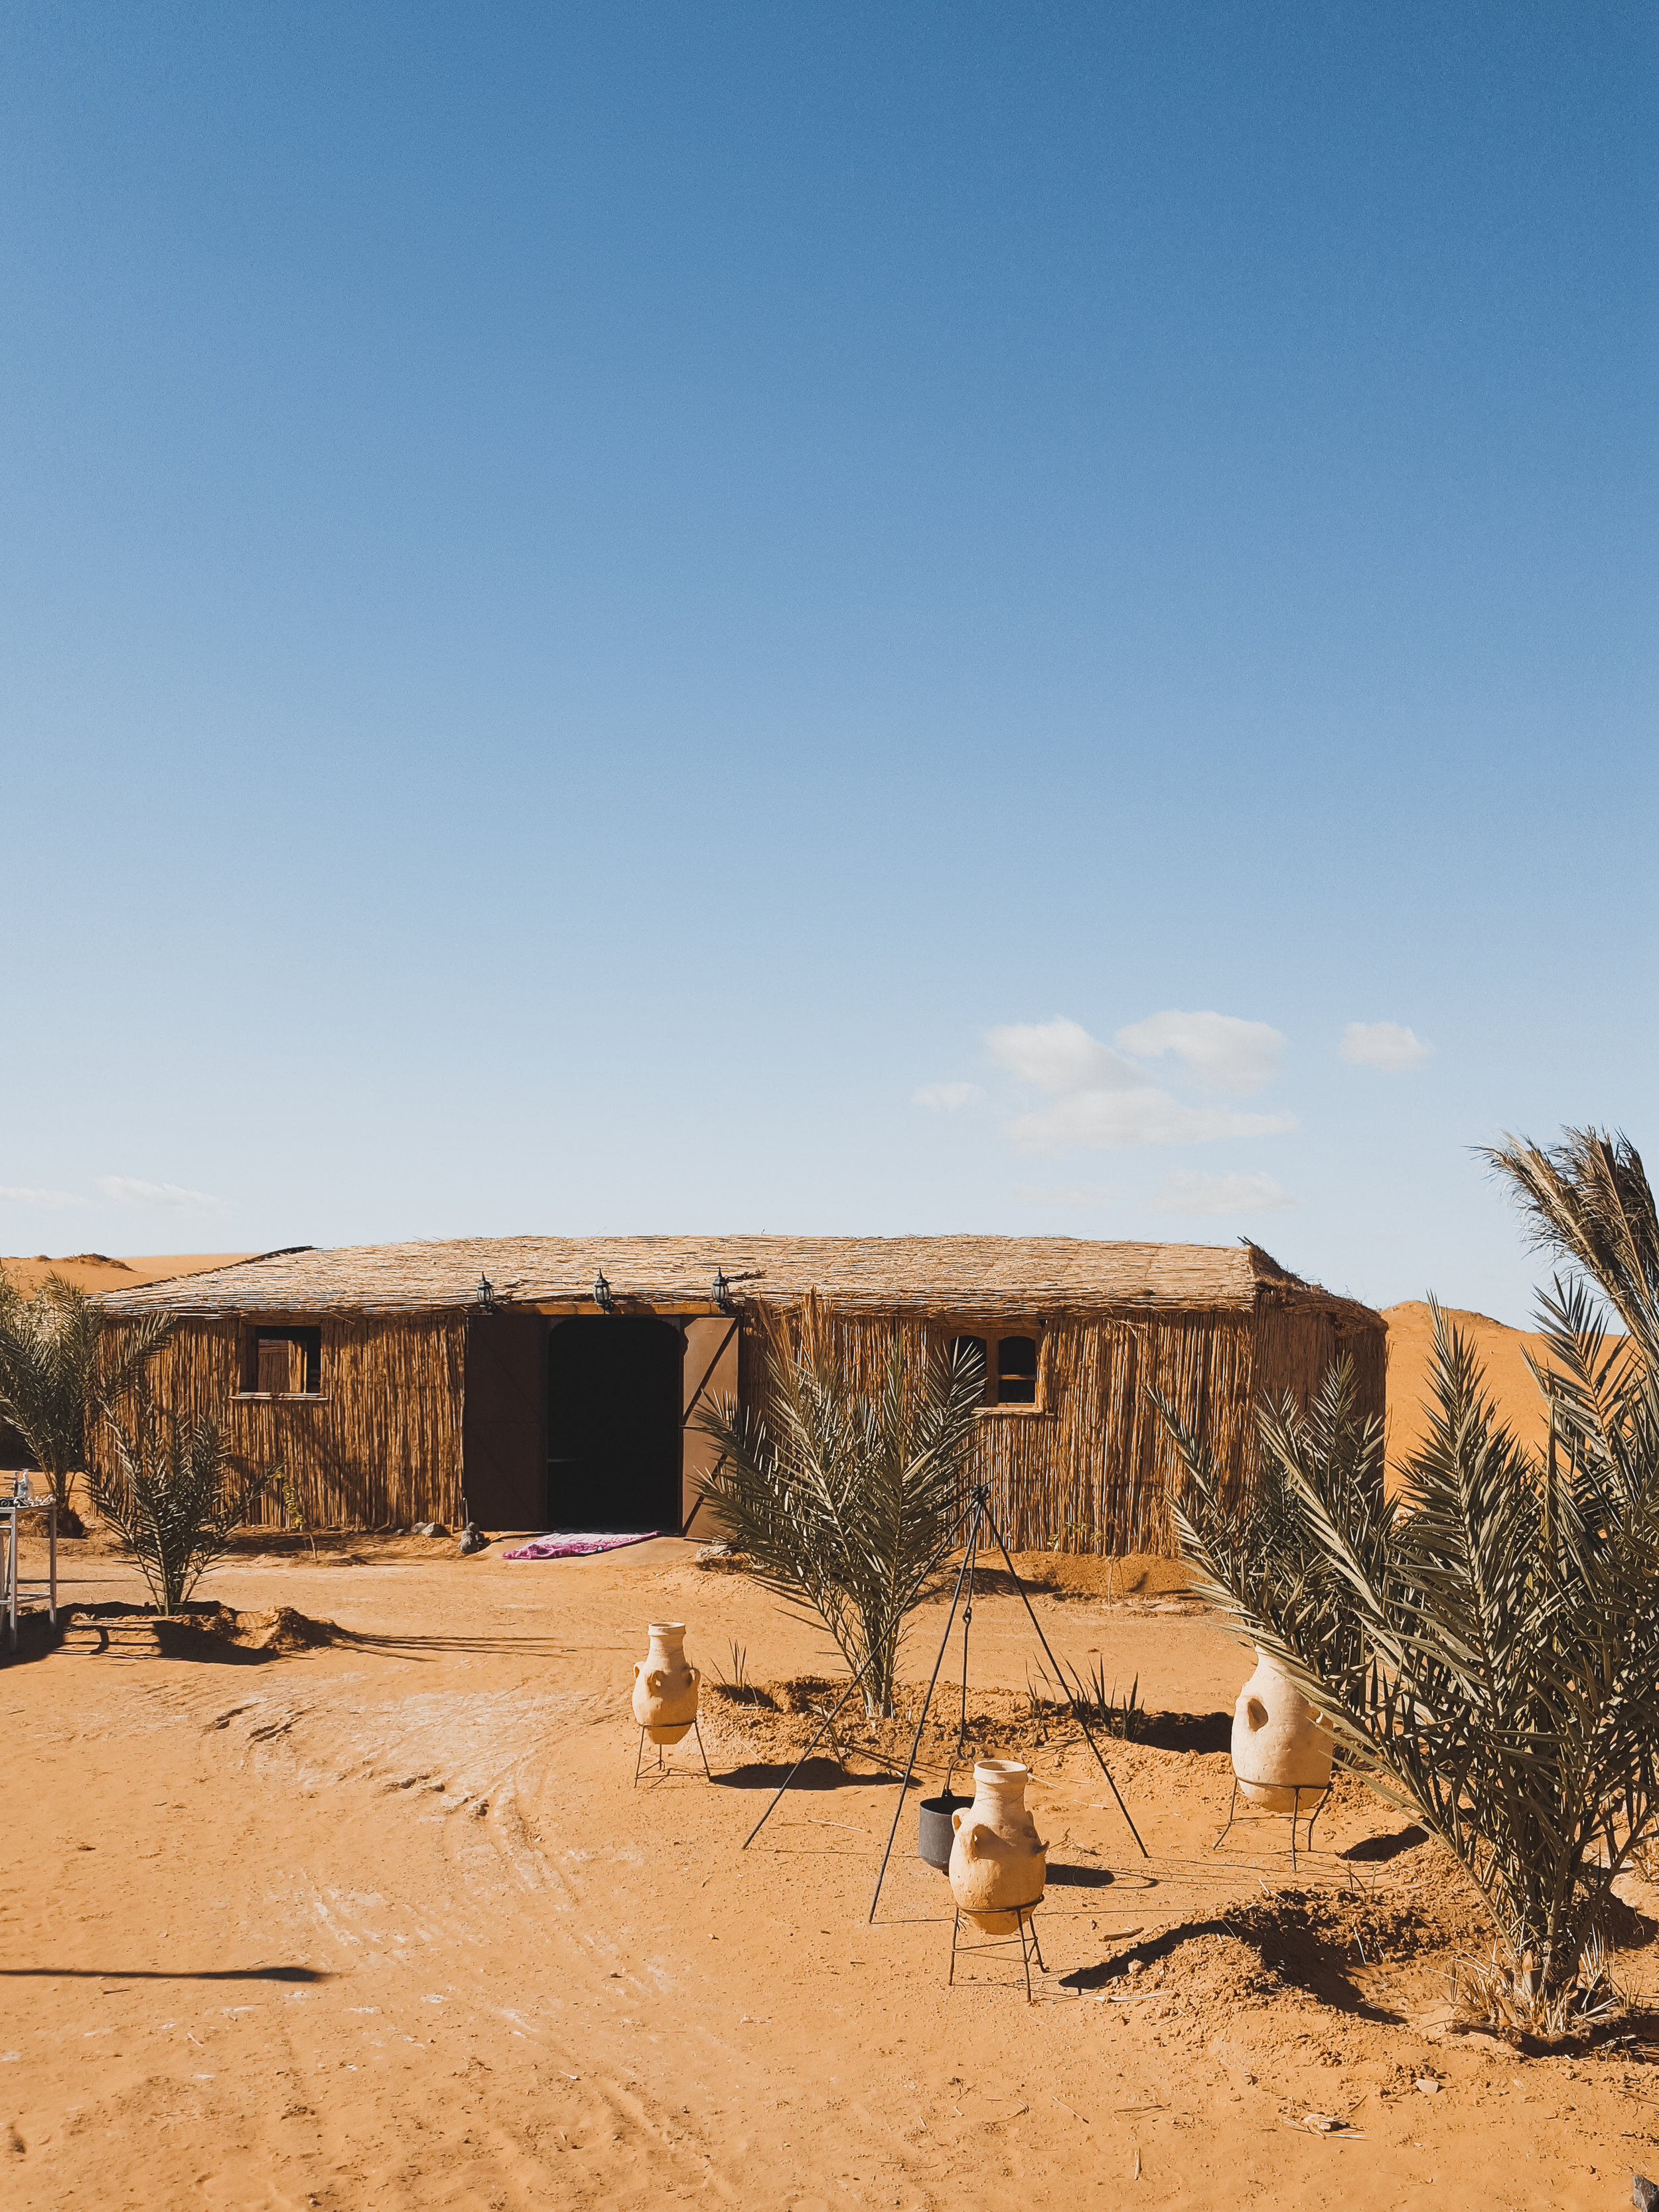 The dining room at our Sahara Desert camp in Merzouga, Morocco